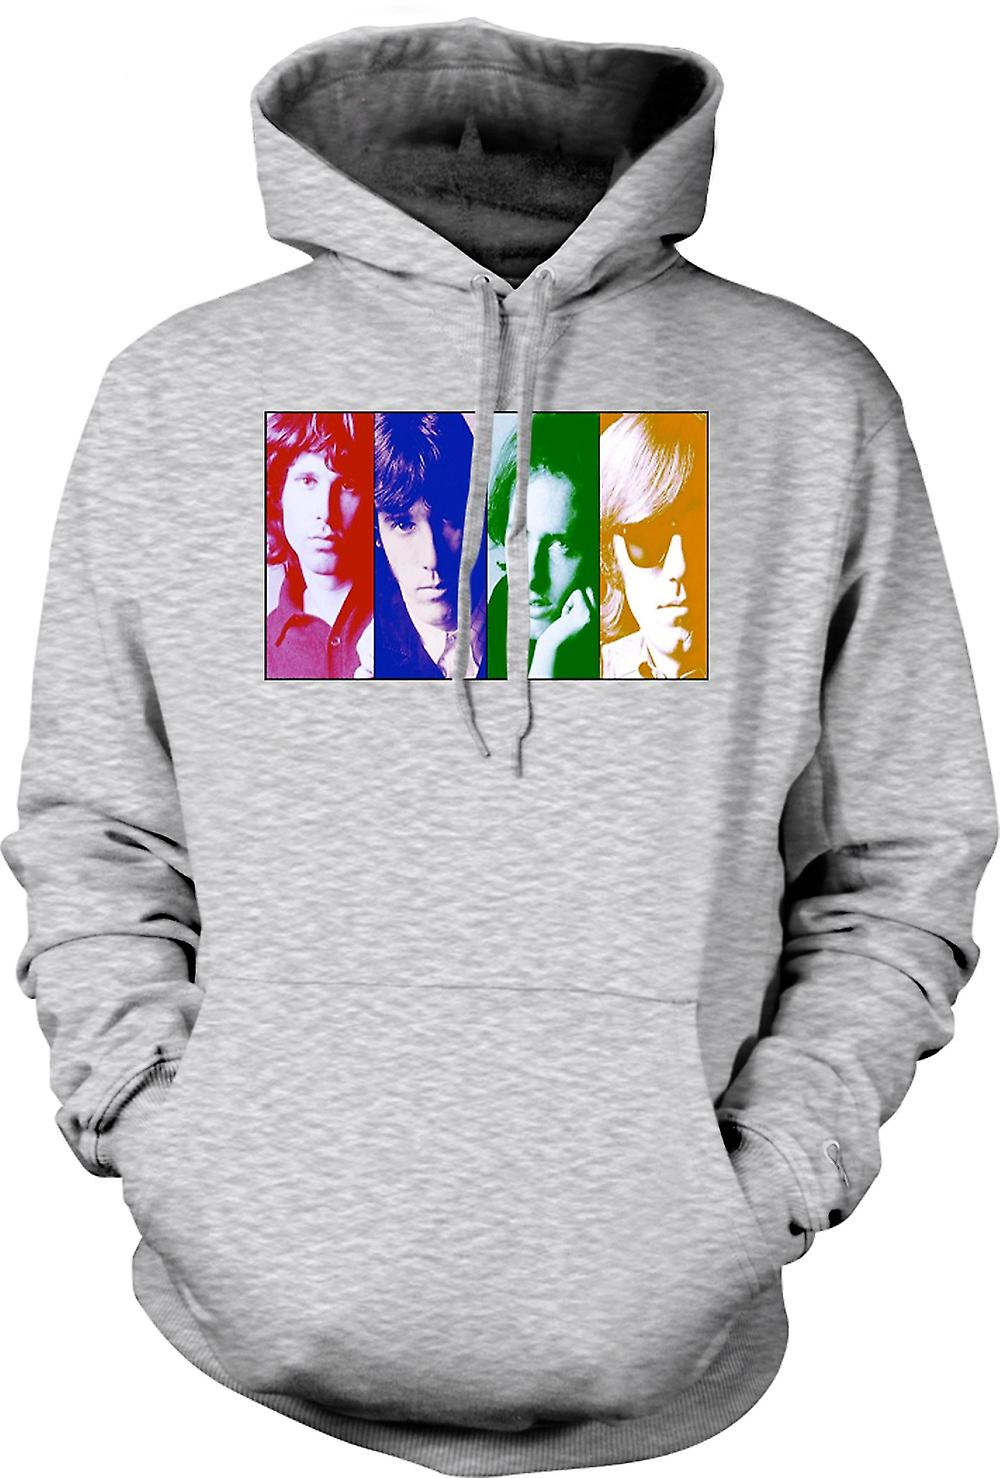 Mens Hoodie - la porte - Collage - Pop Art